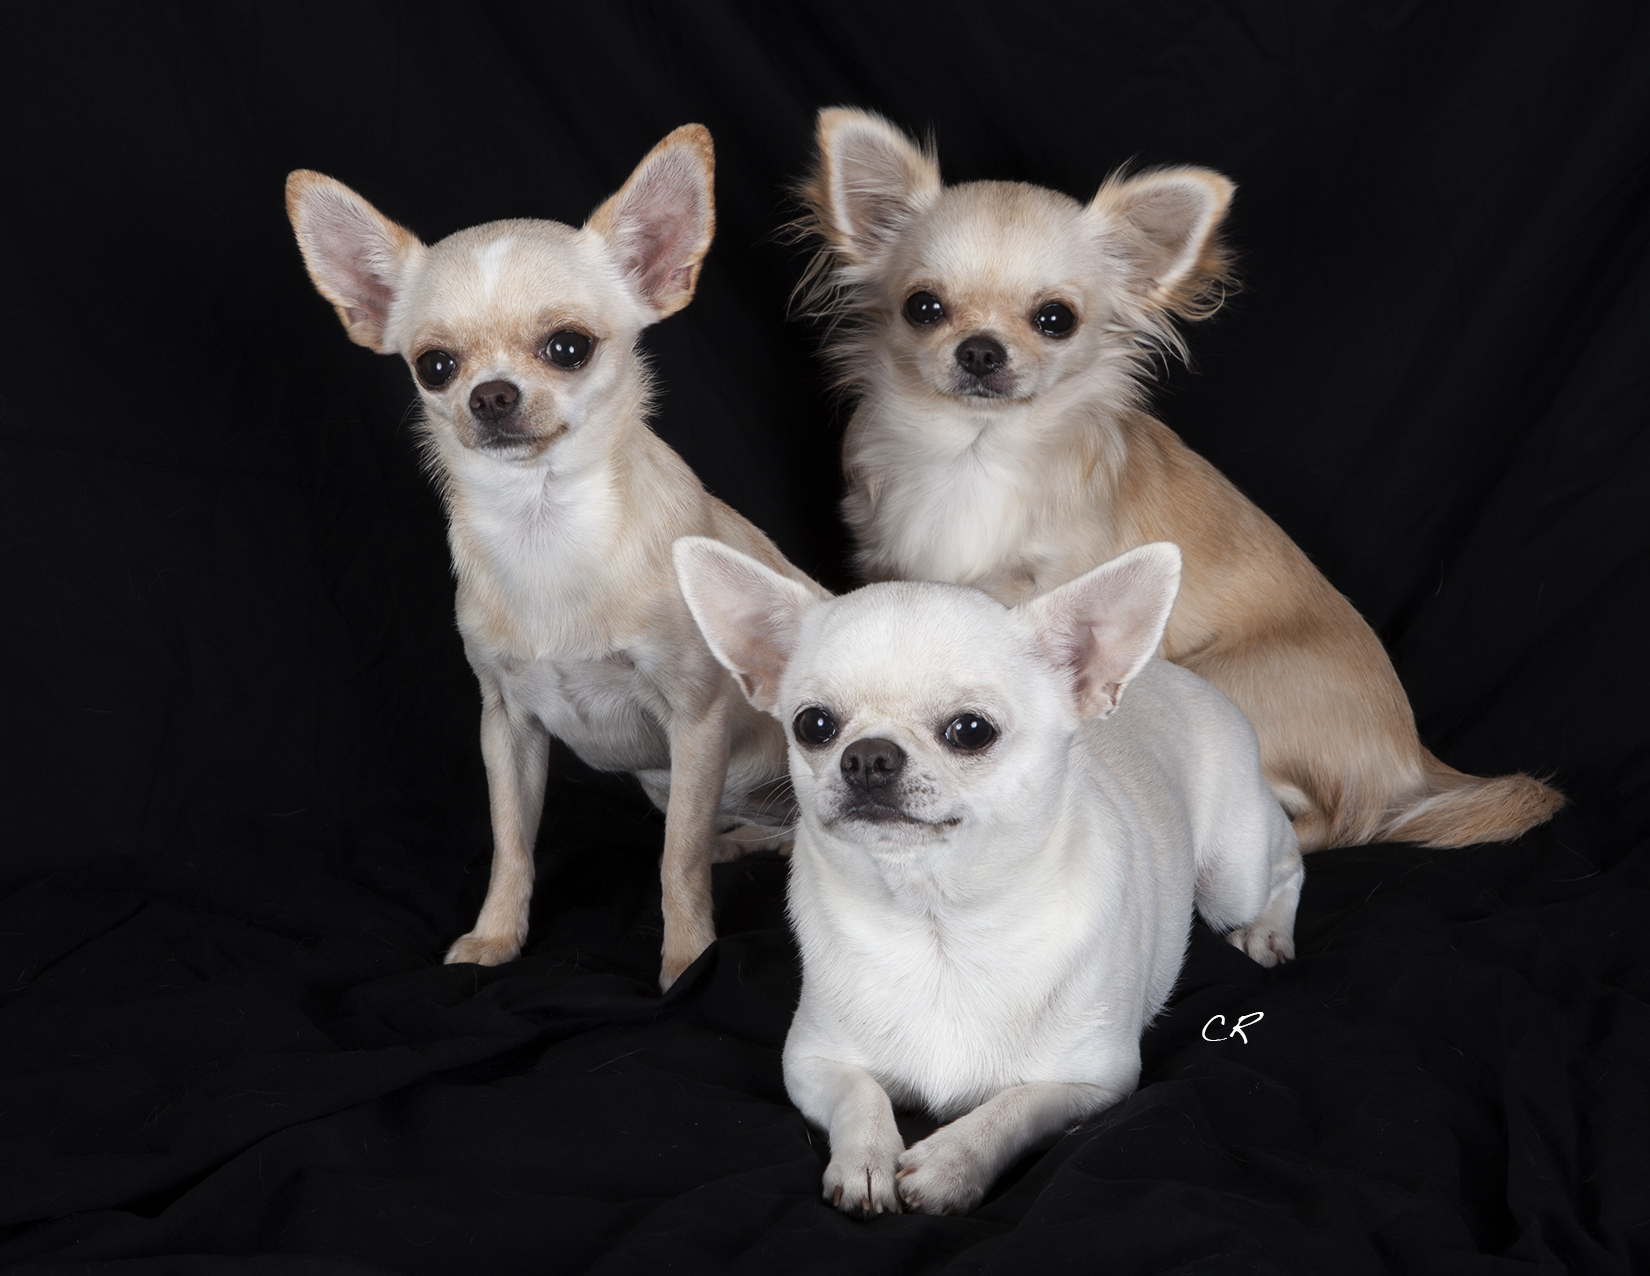 File:Chihuahuas- Holly, Nina, Doralice.jpg - Wikimedia Commons